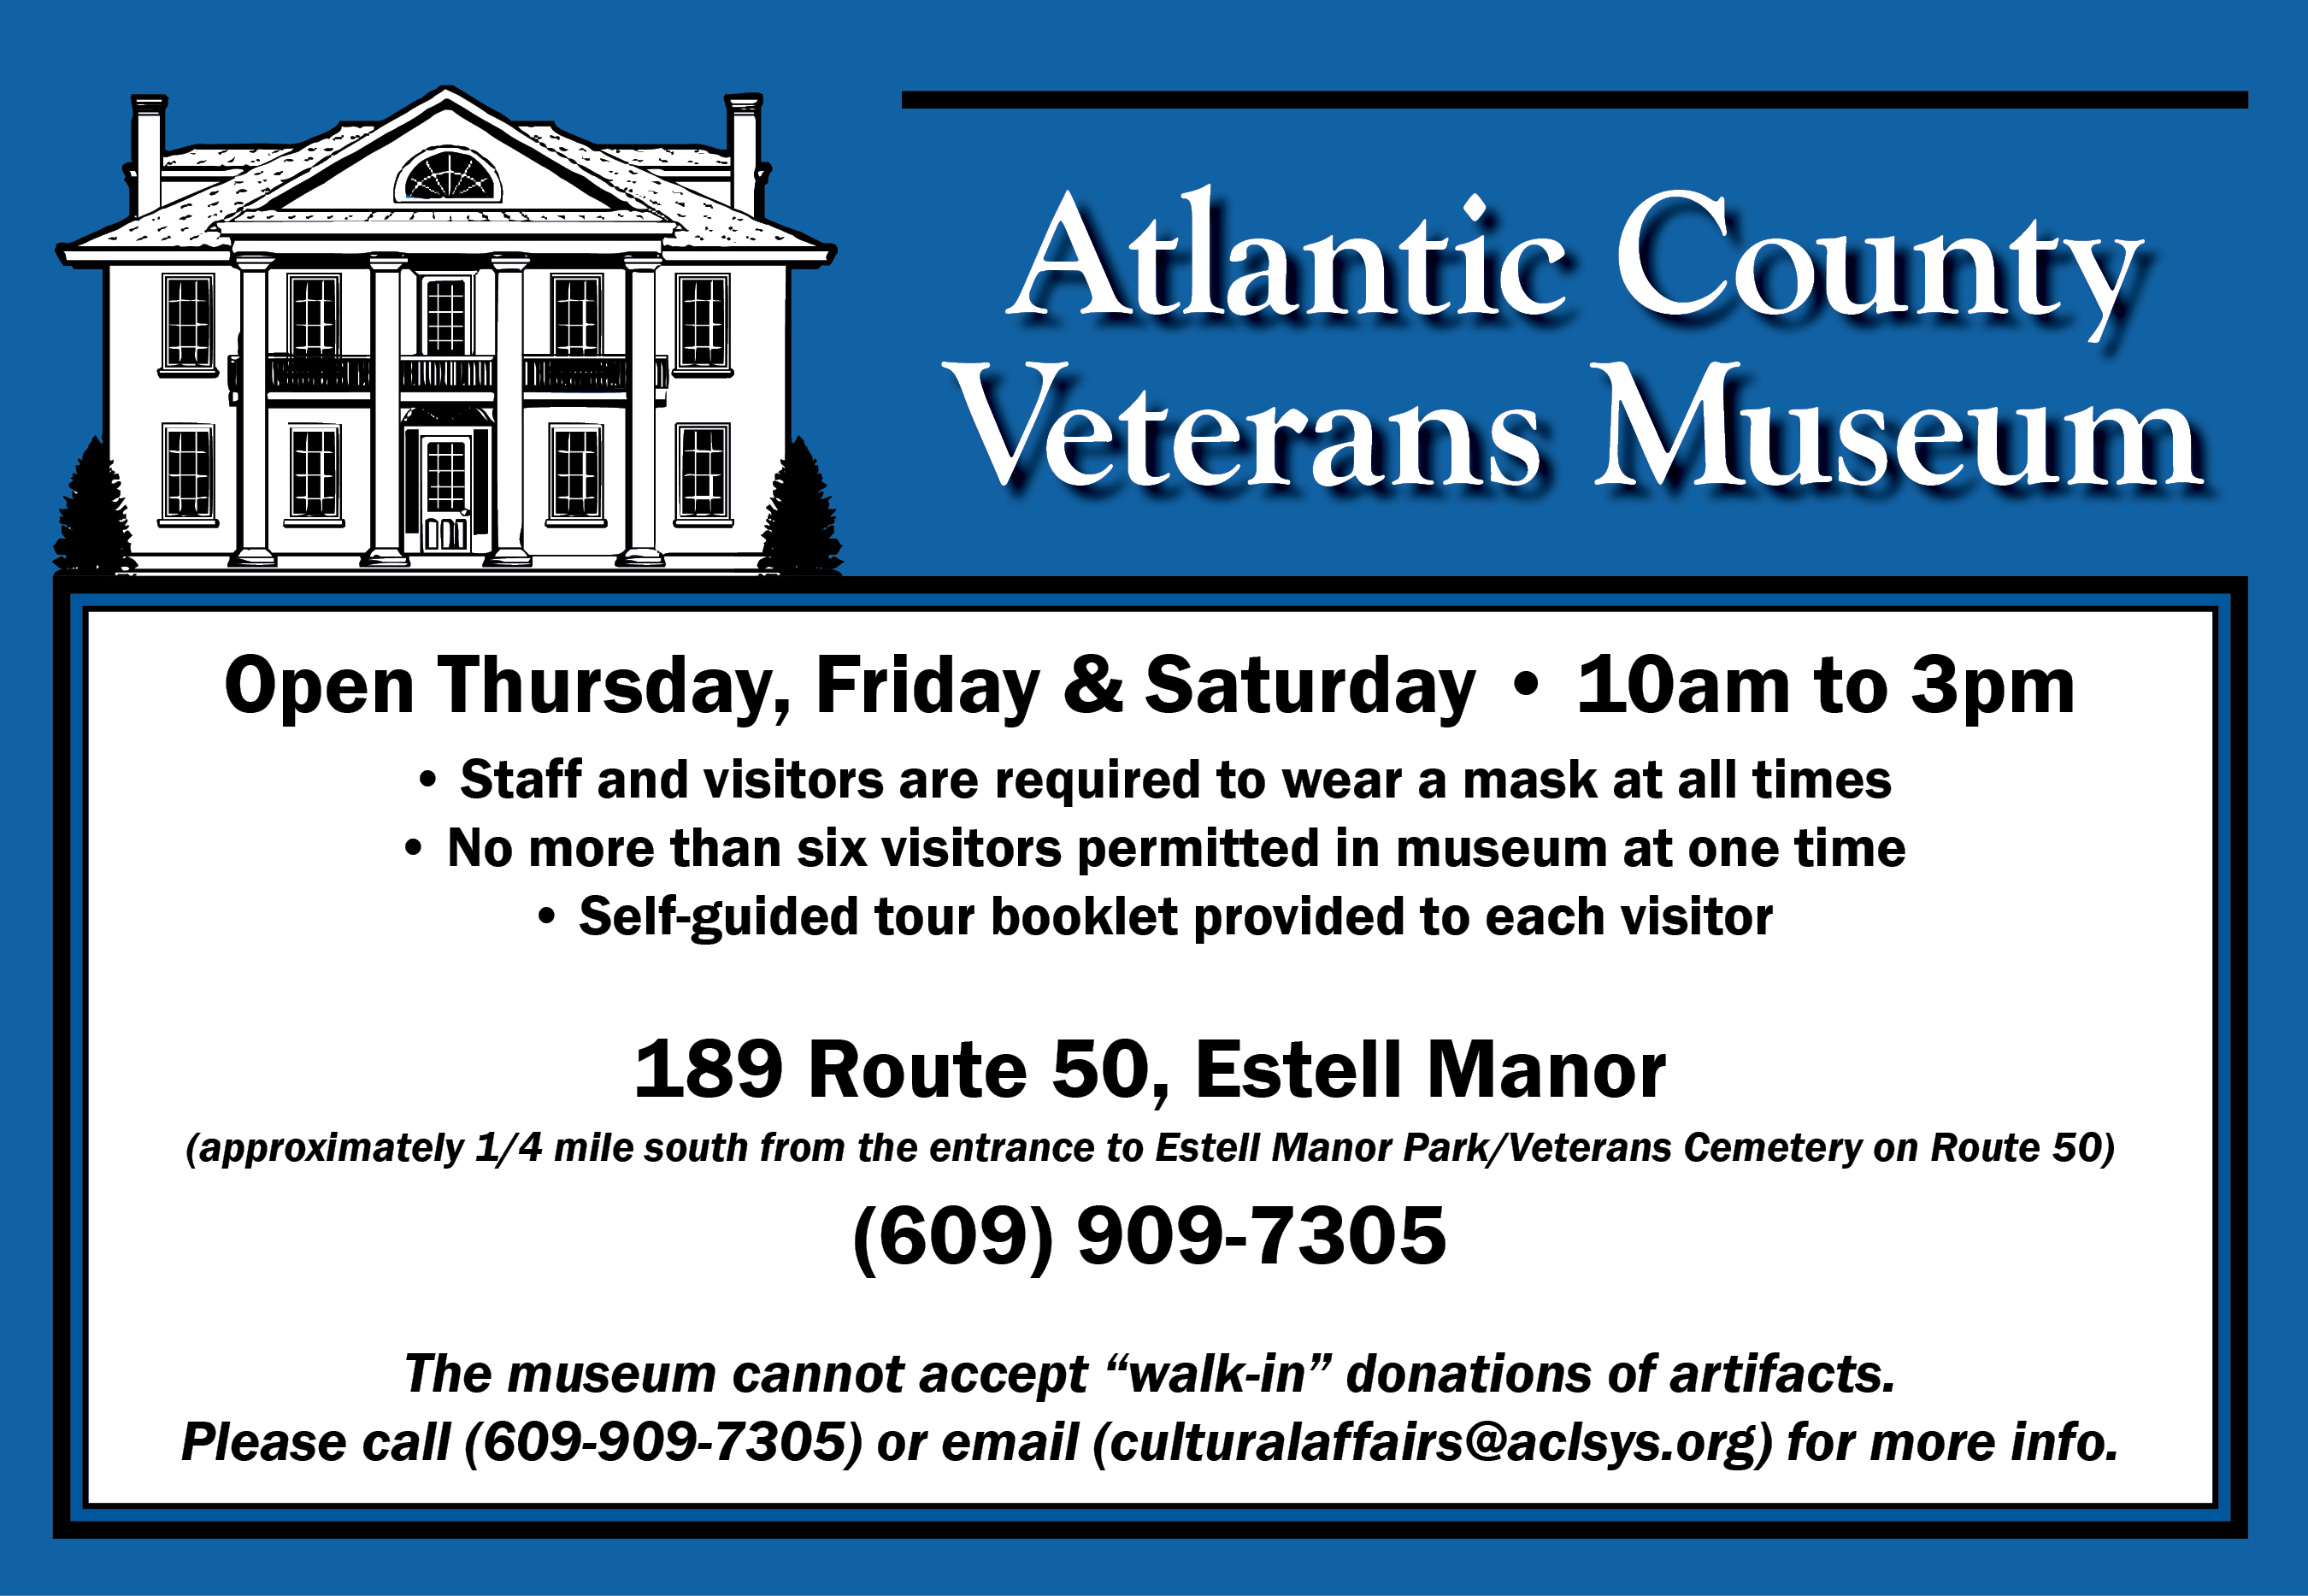 "Atlantic County Veterans Museum Open Thursday,  Friday, & Saturday 10am-3pm Safe and visitors are required to wear a mask at all times No more than six visitors permitted in museum at one time Self-guided tour booklet provided to each visitor 189 Route 50, Estell Manor (approximately 1/4 mile south from the entrance to Estell Manor Park/Veterans Cemetary on Route 50) (609) 909-7305 The museum cannot accept ""walk-in"" donations of artifacts. Please call (609-909-7305 or email (culturalaffairs@aclsys.org) for more info."